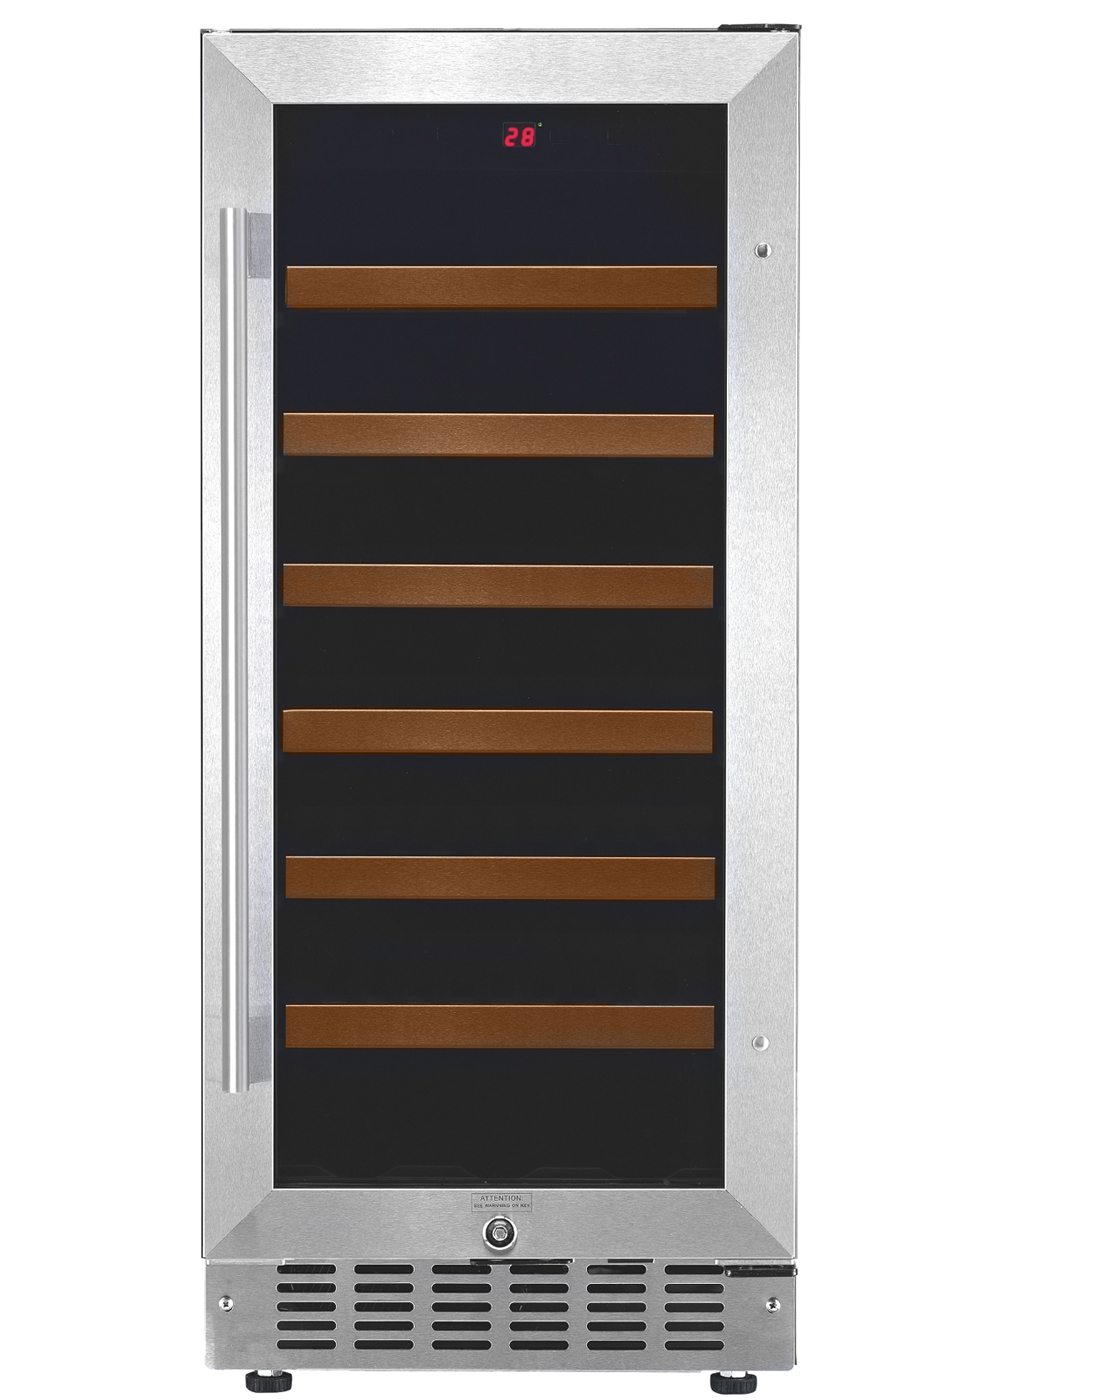 WINE COOLER 33 BOTTLES WHITE WESTINGHOUSE USA - SINGLE ZONE, BUILT-IN FOR RED / WHITE / SPARKLING WINES WITH STAINLESS STEEL DOOR FRAME